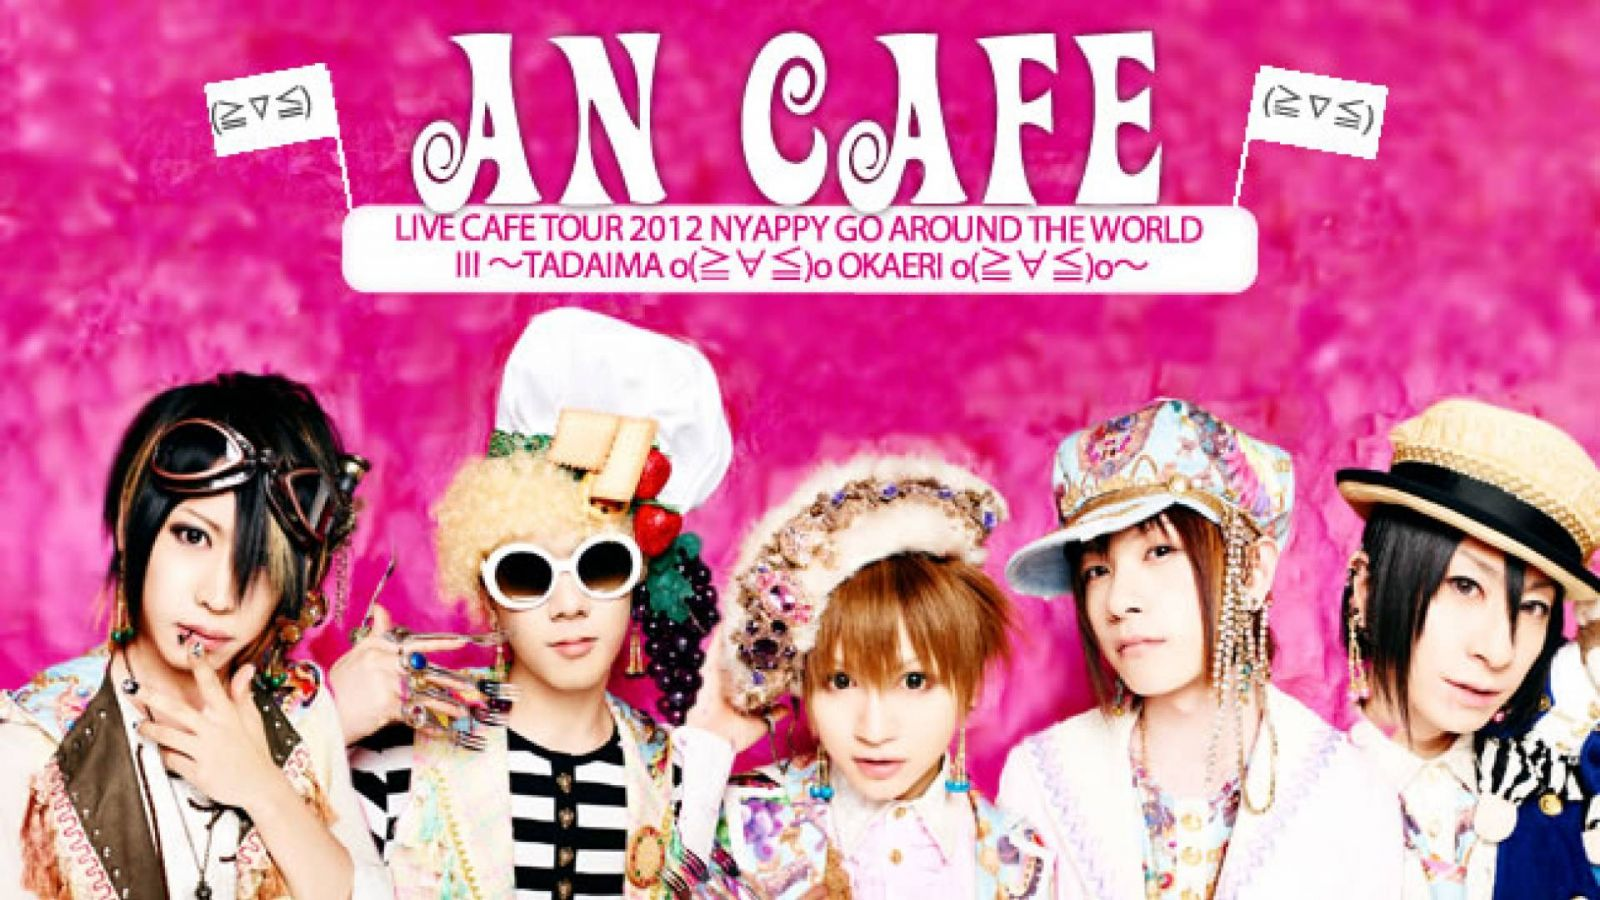 Vip Tea Party com o An Cafe no Brasil © An Cafe, Sony Music Japan. / JaME Suomi, Ida